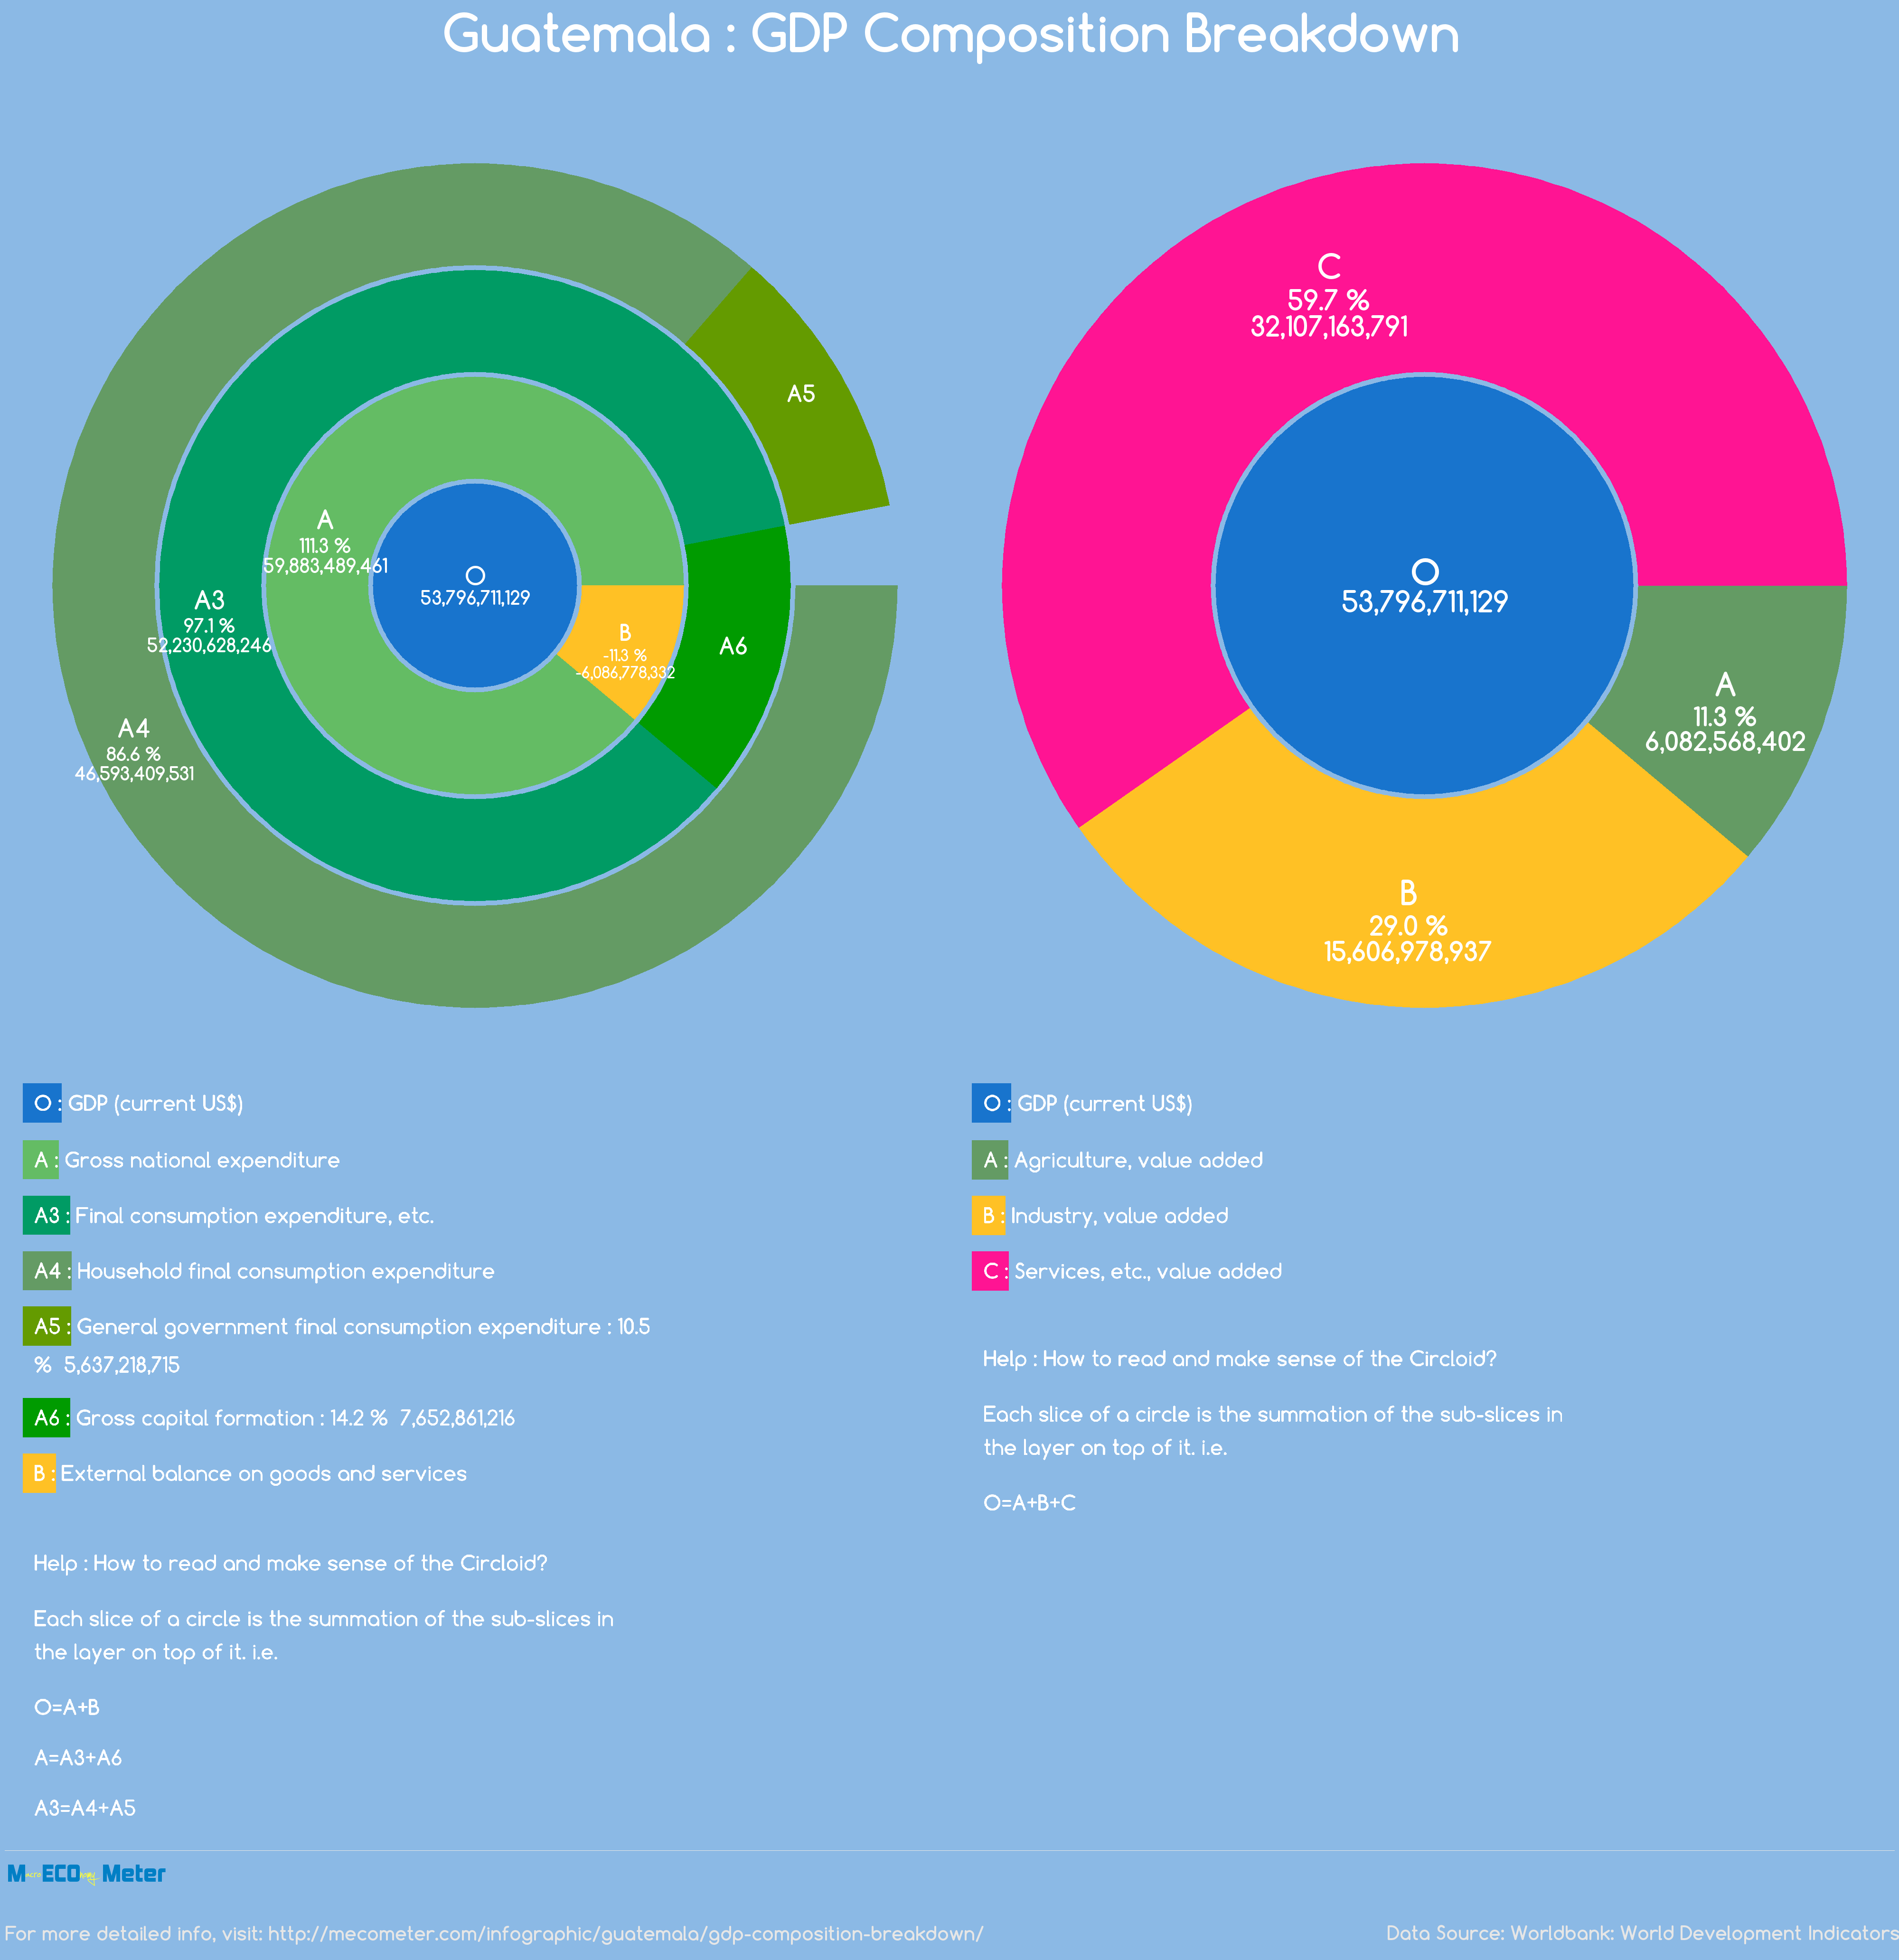 Guatemala : GDP Composition Breakdown